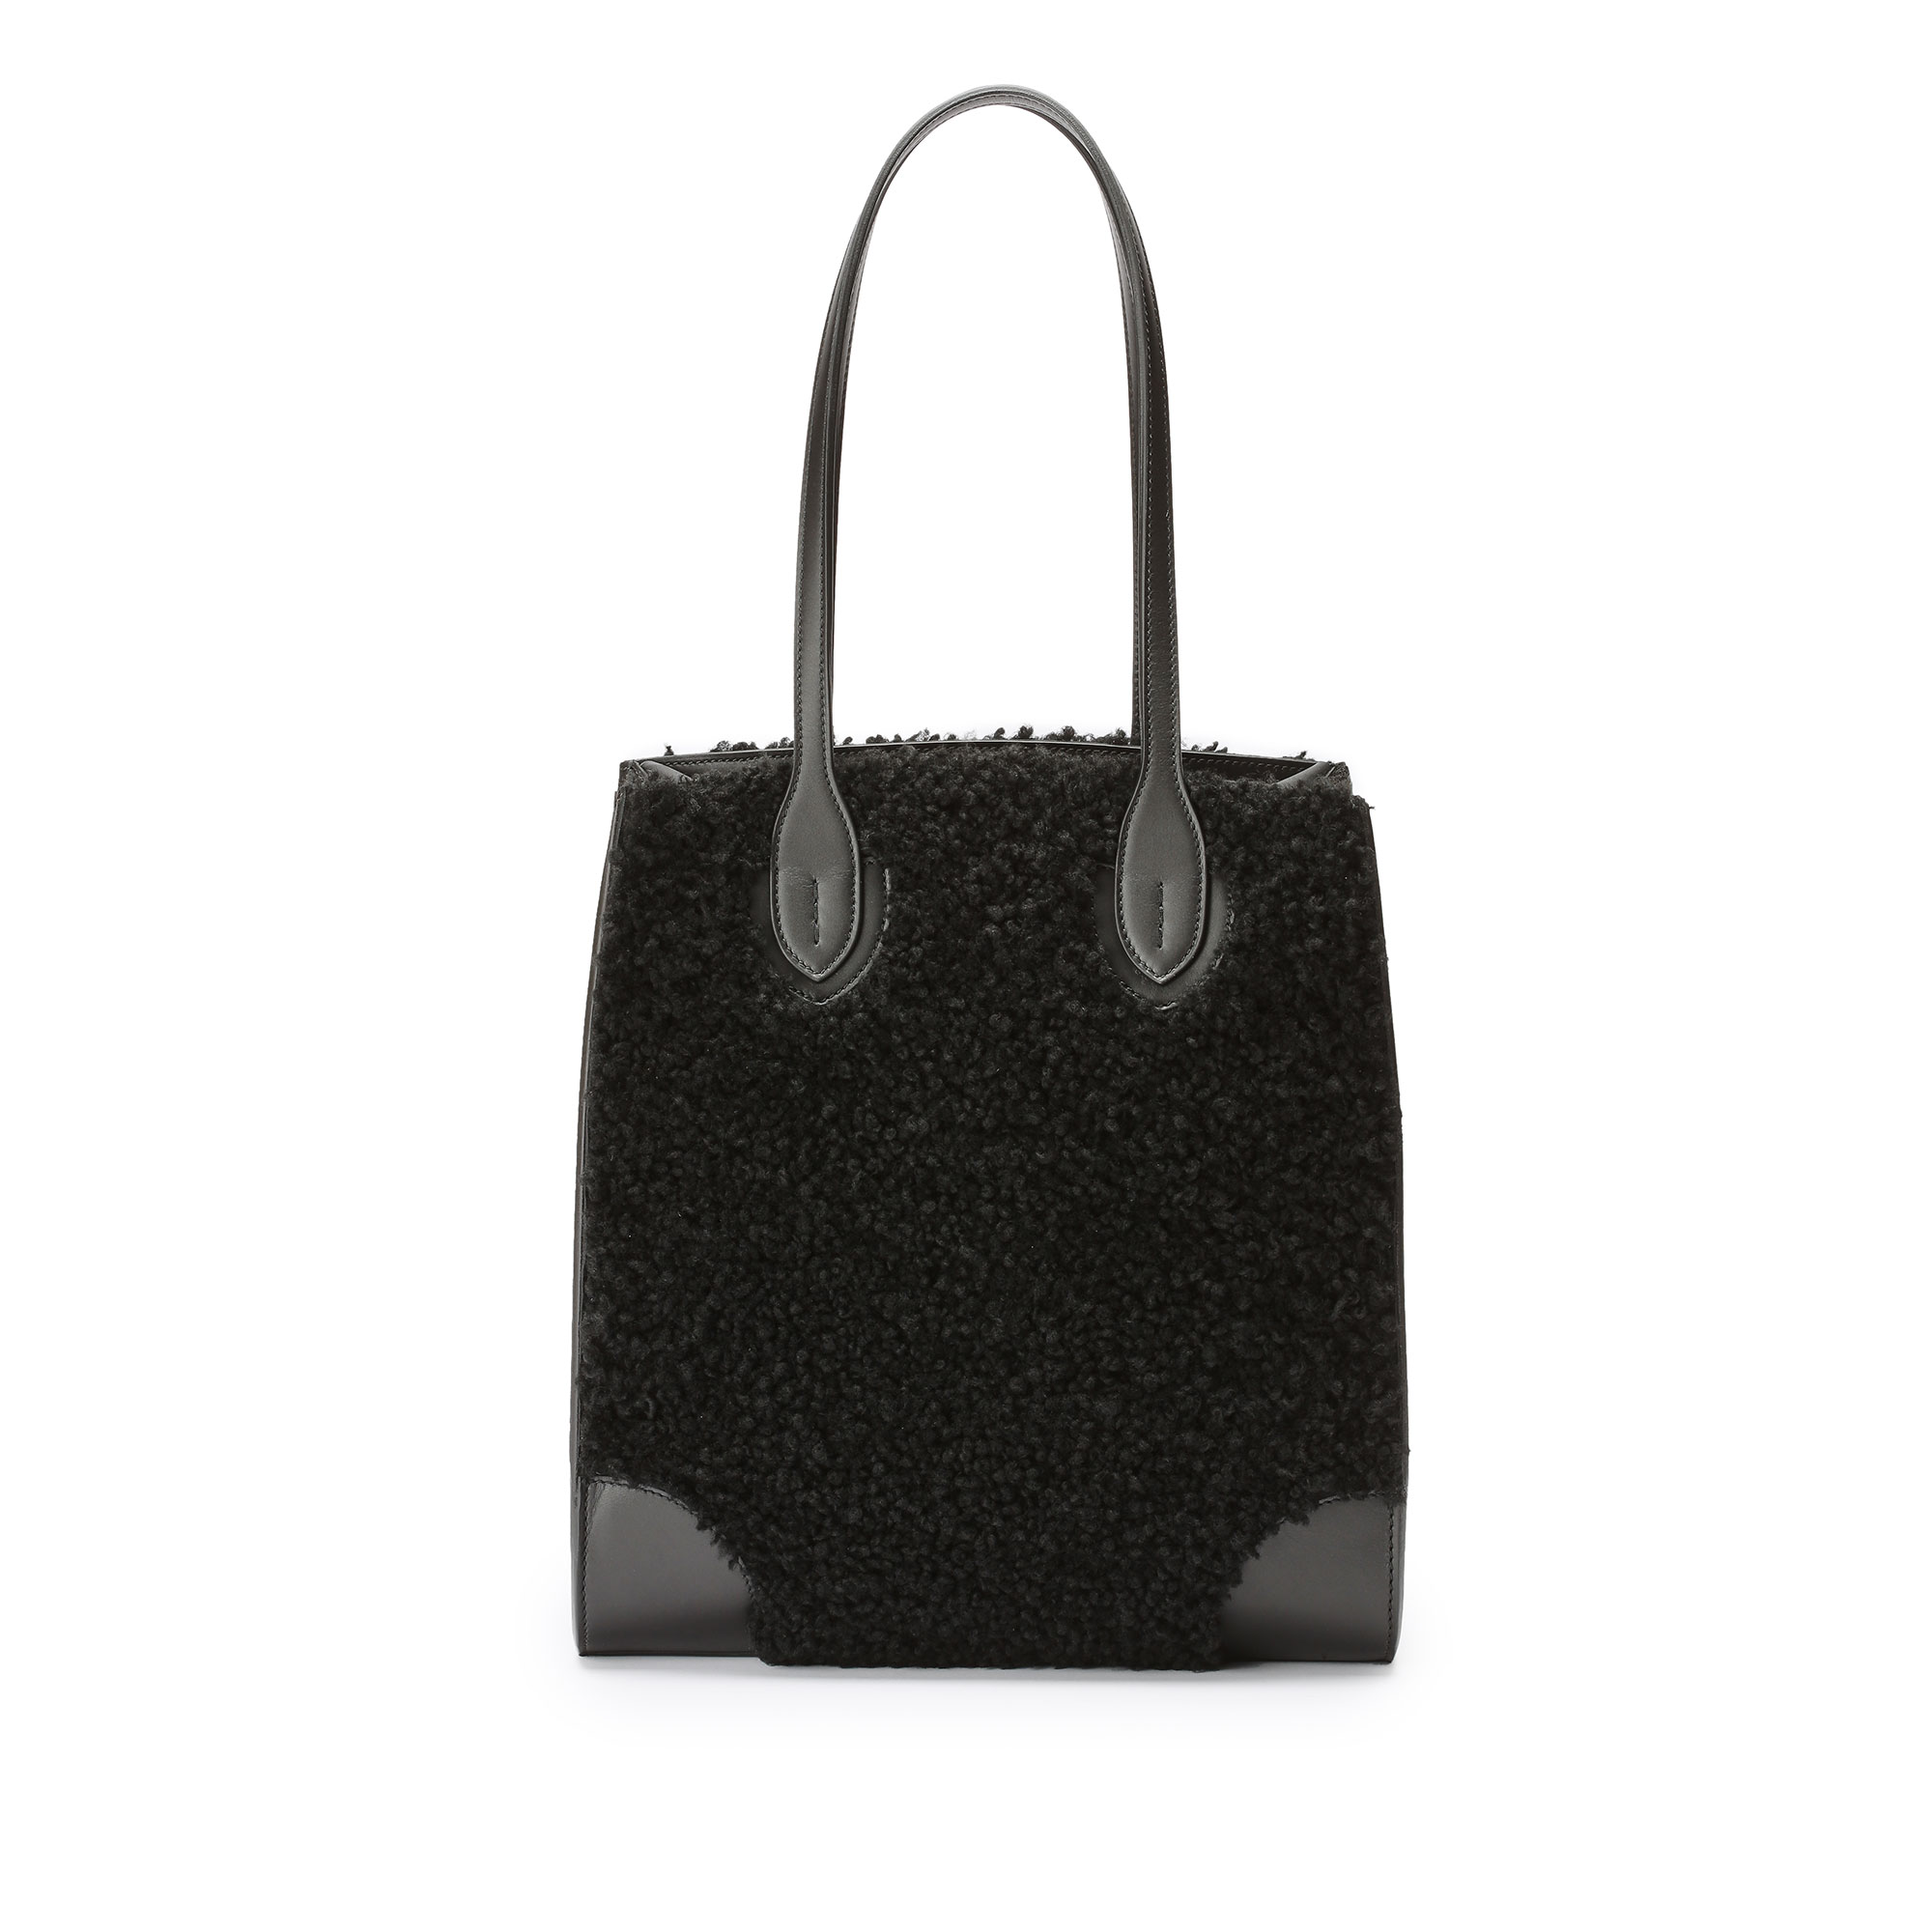 Darcy-Tote-black-shearling-bag-Bertoni-1949